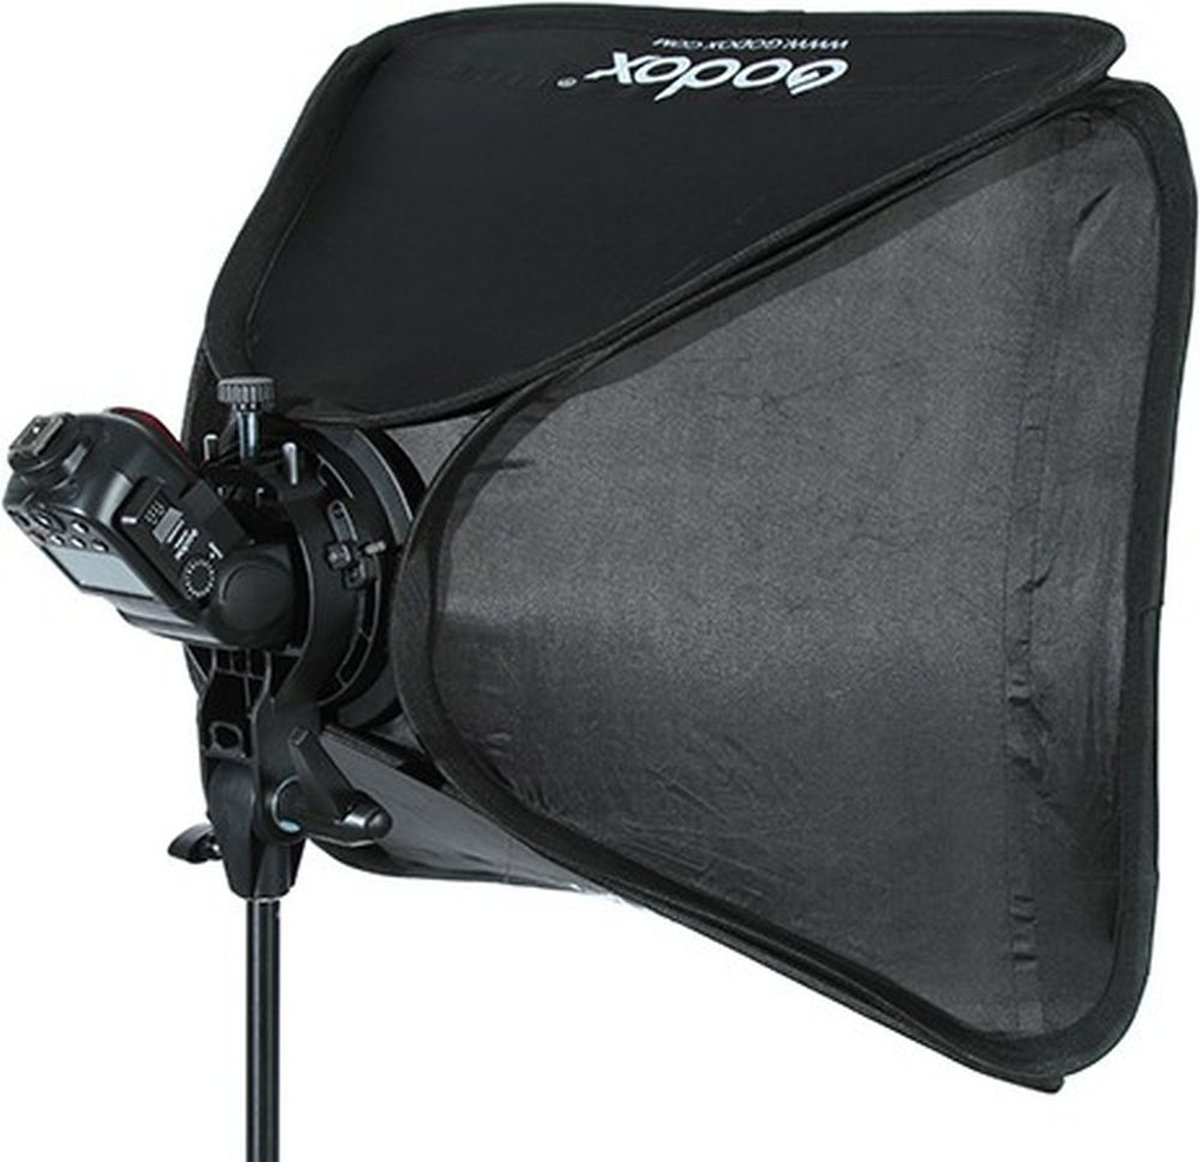 Godox Speedlite Bracket Bowens + Softbox 60x60 kopen